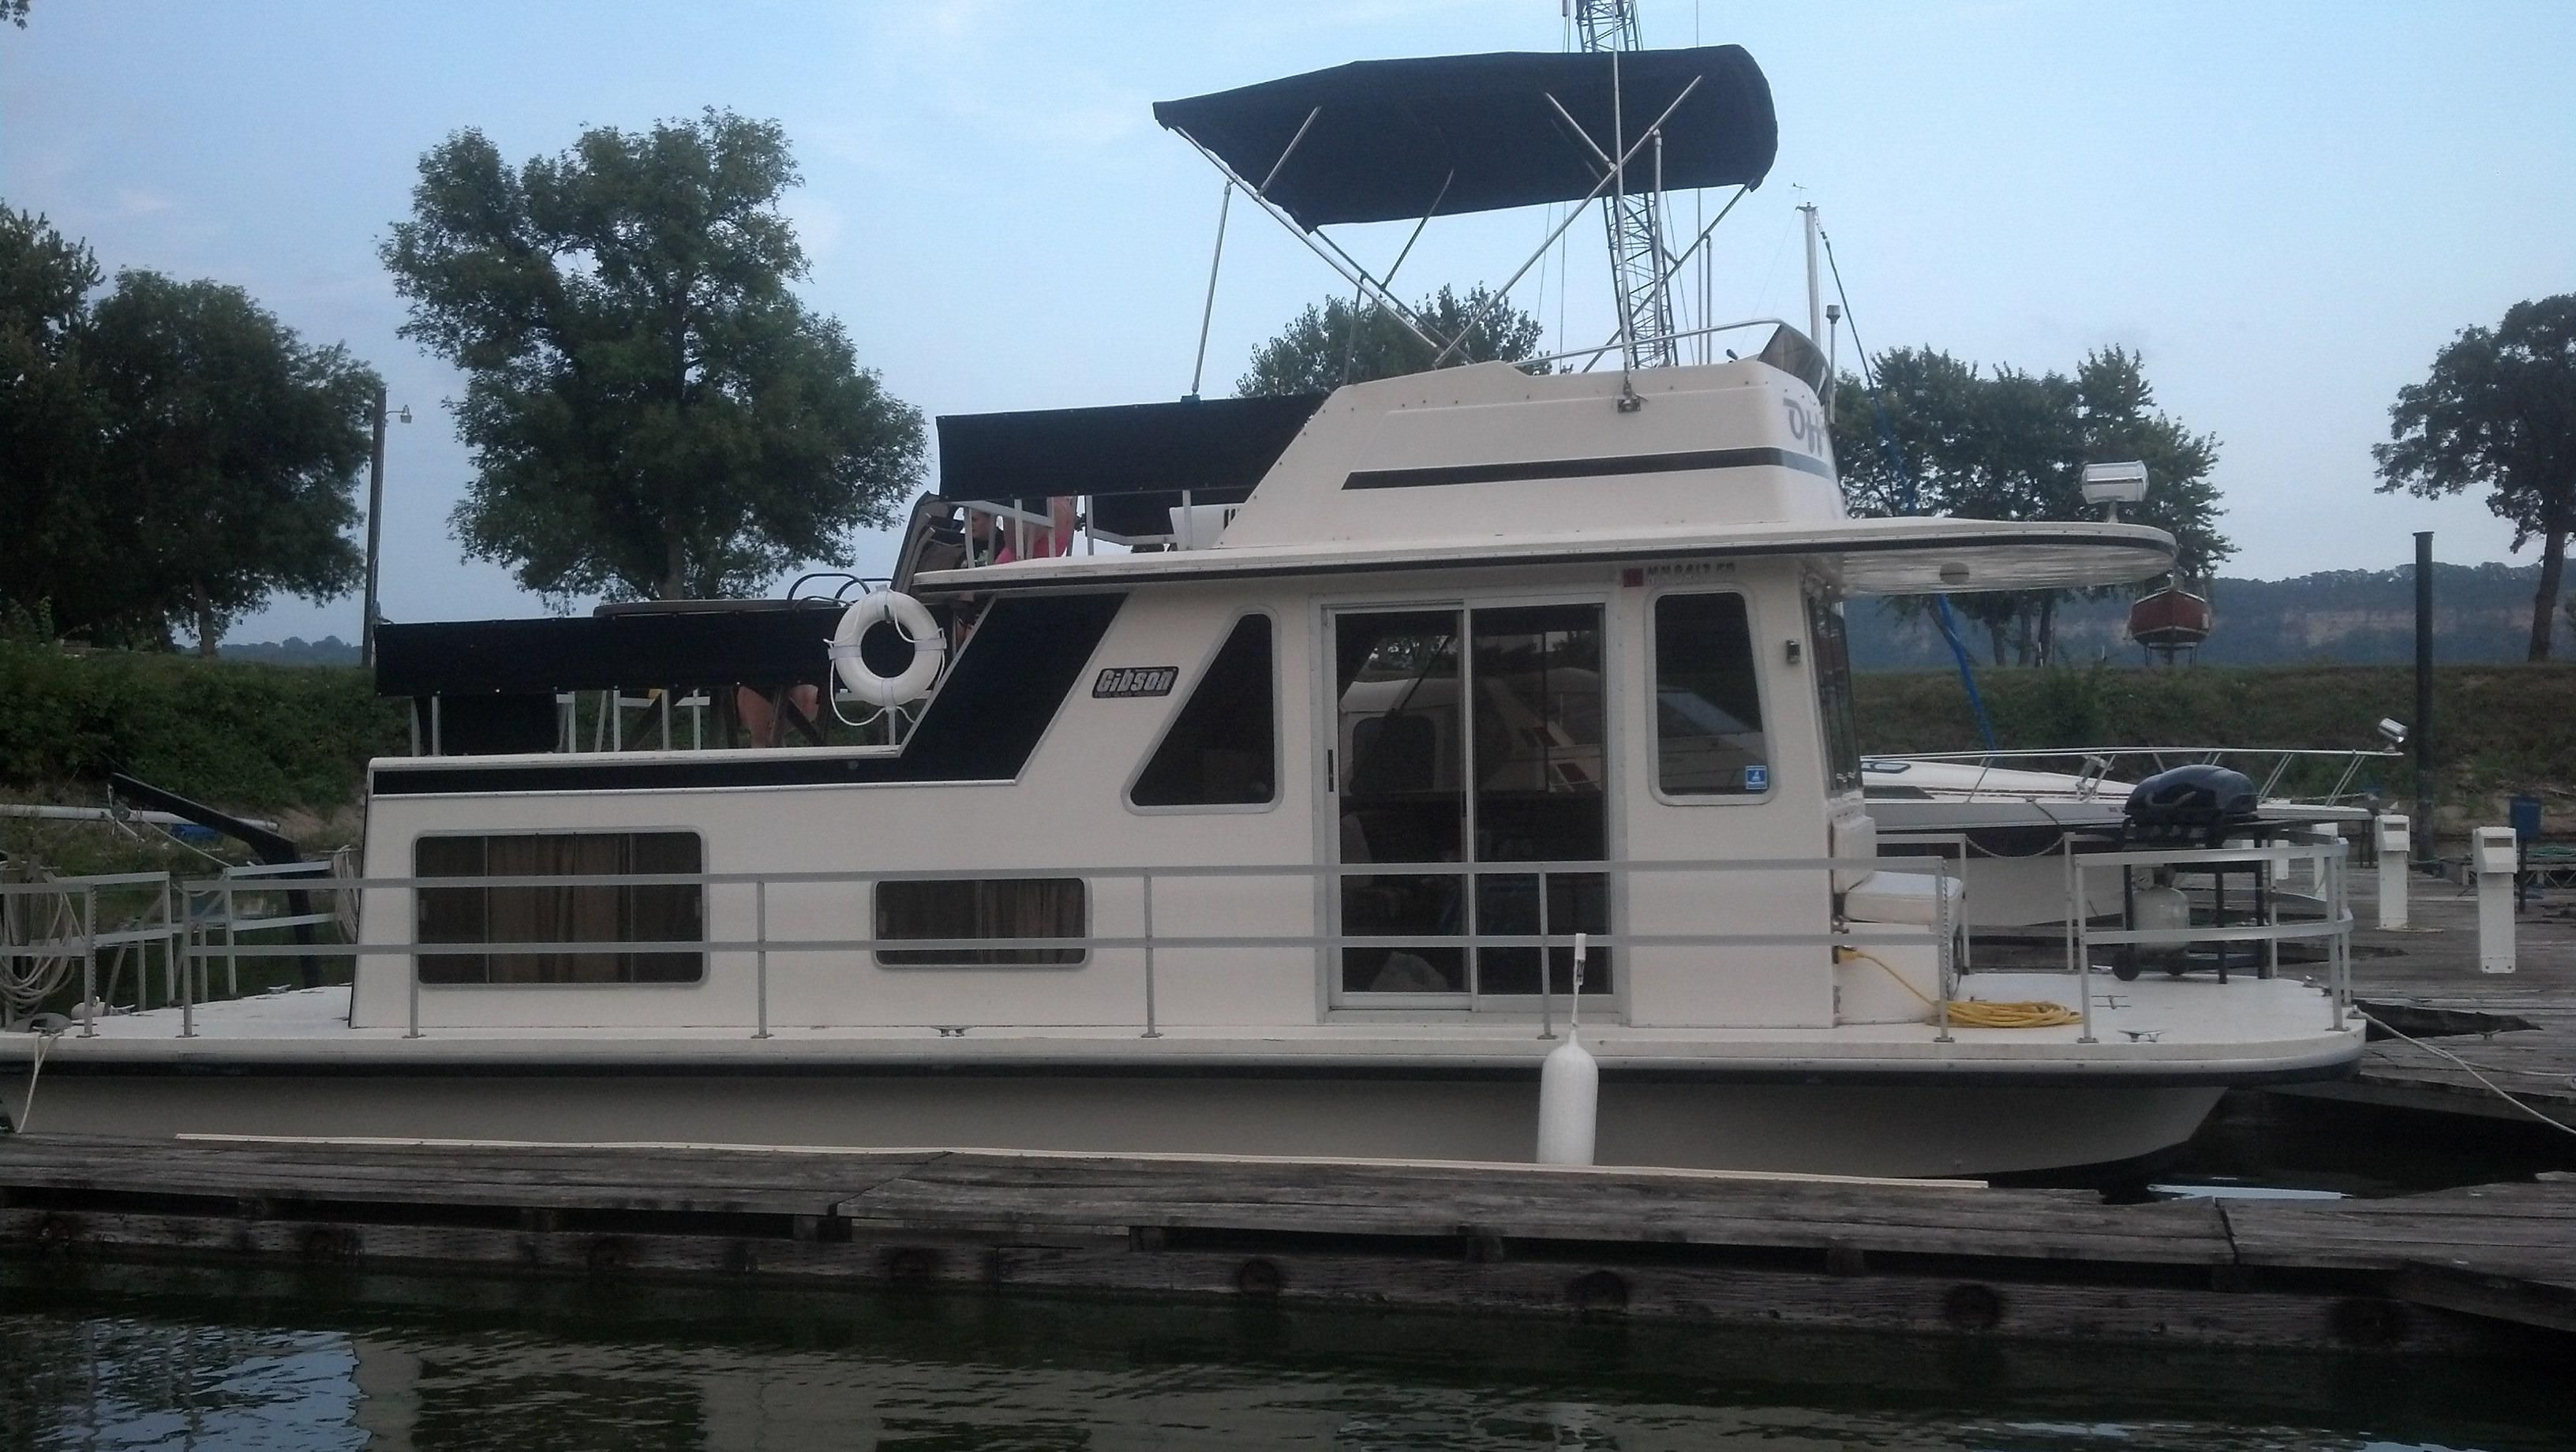 1985 36 Ft Gibson Houseboat Google Search Boat Building Plans House Boat Boat Building